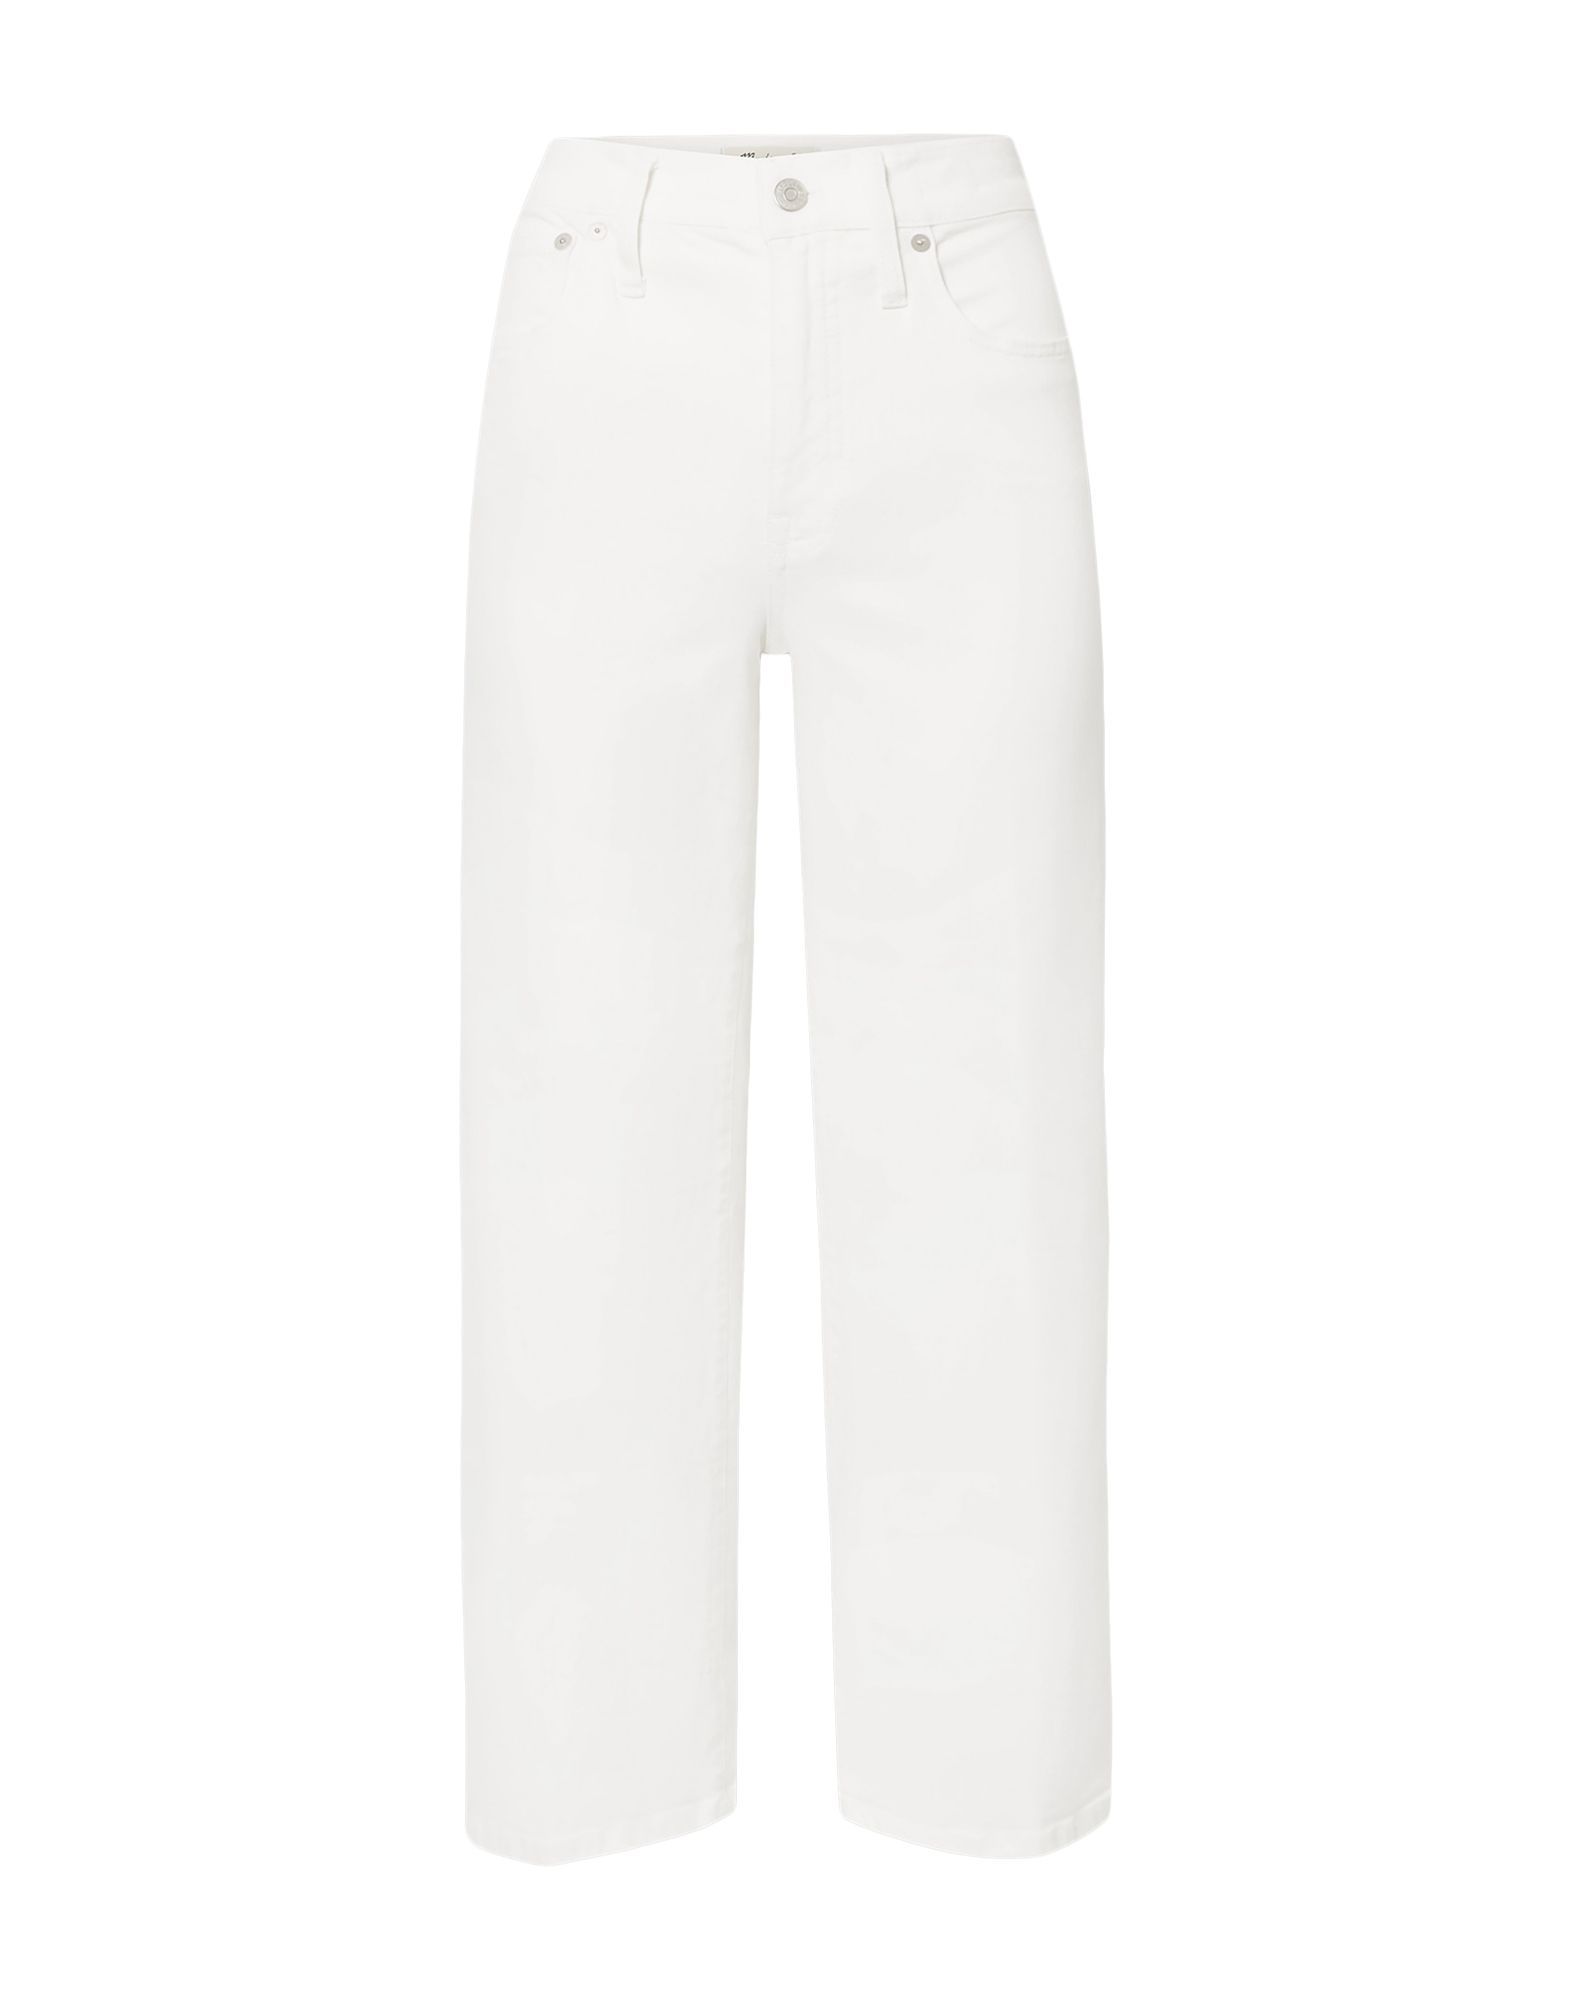 MADEWELL Jeans. denim, no appliqués, solid color, colored wash, front closure, button, zip, multipockets, high waisted, stretch. 98% Cotton, 2% Elastane